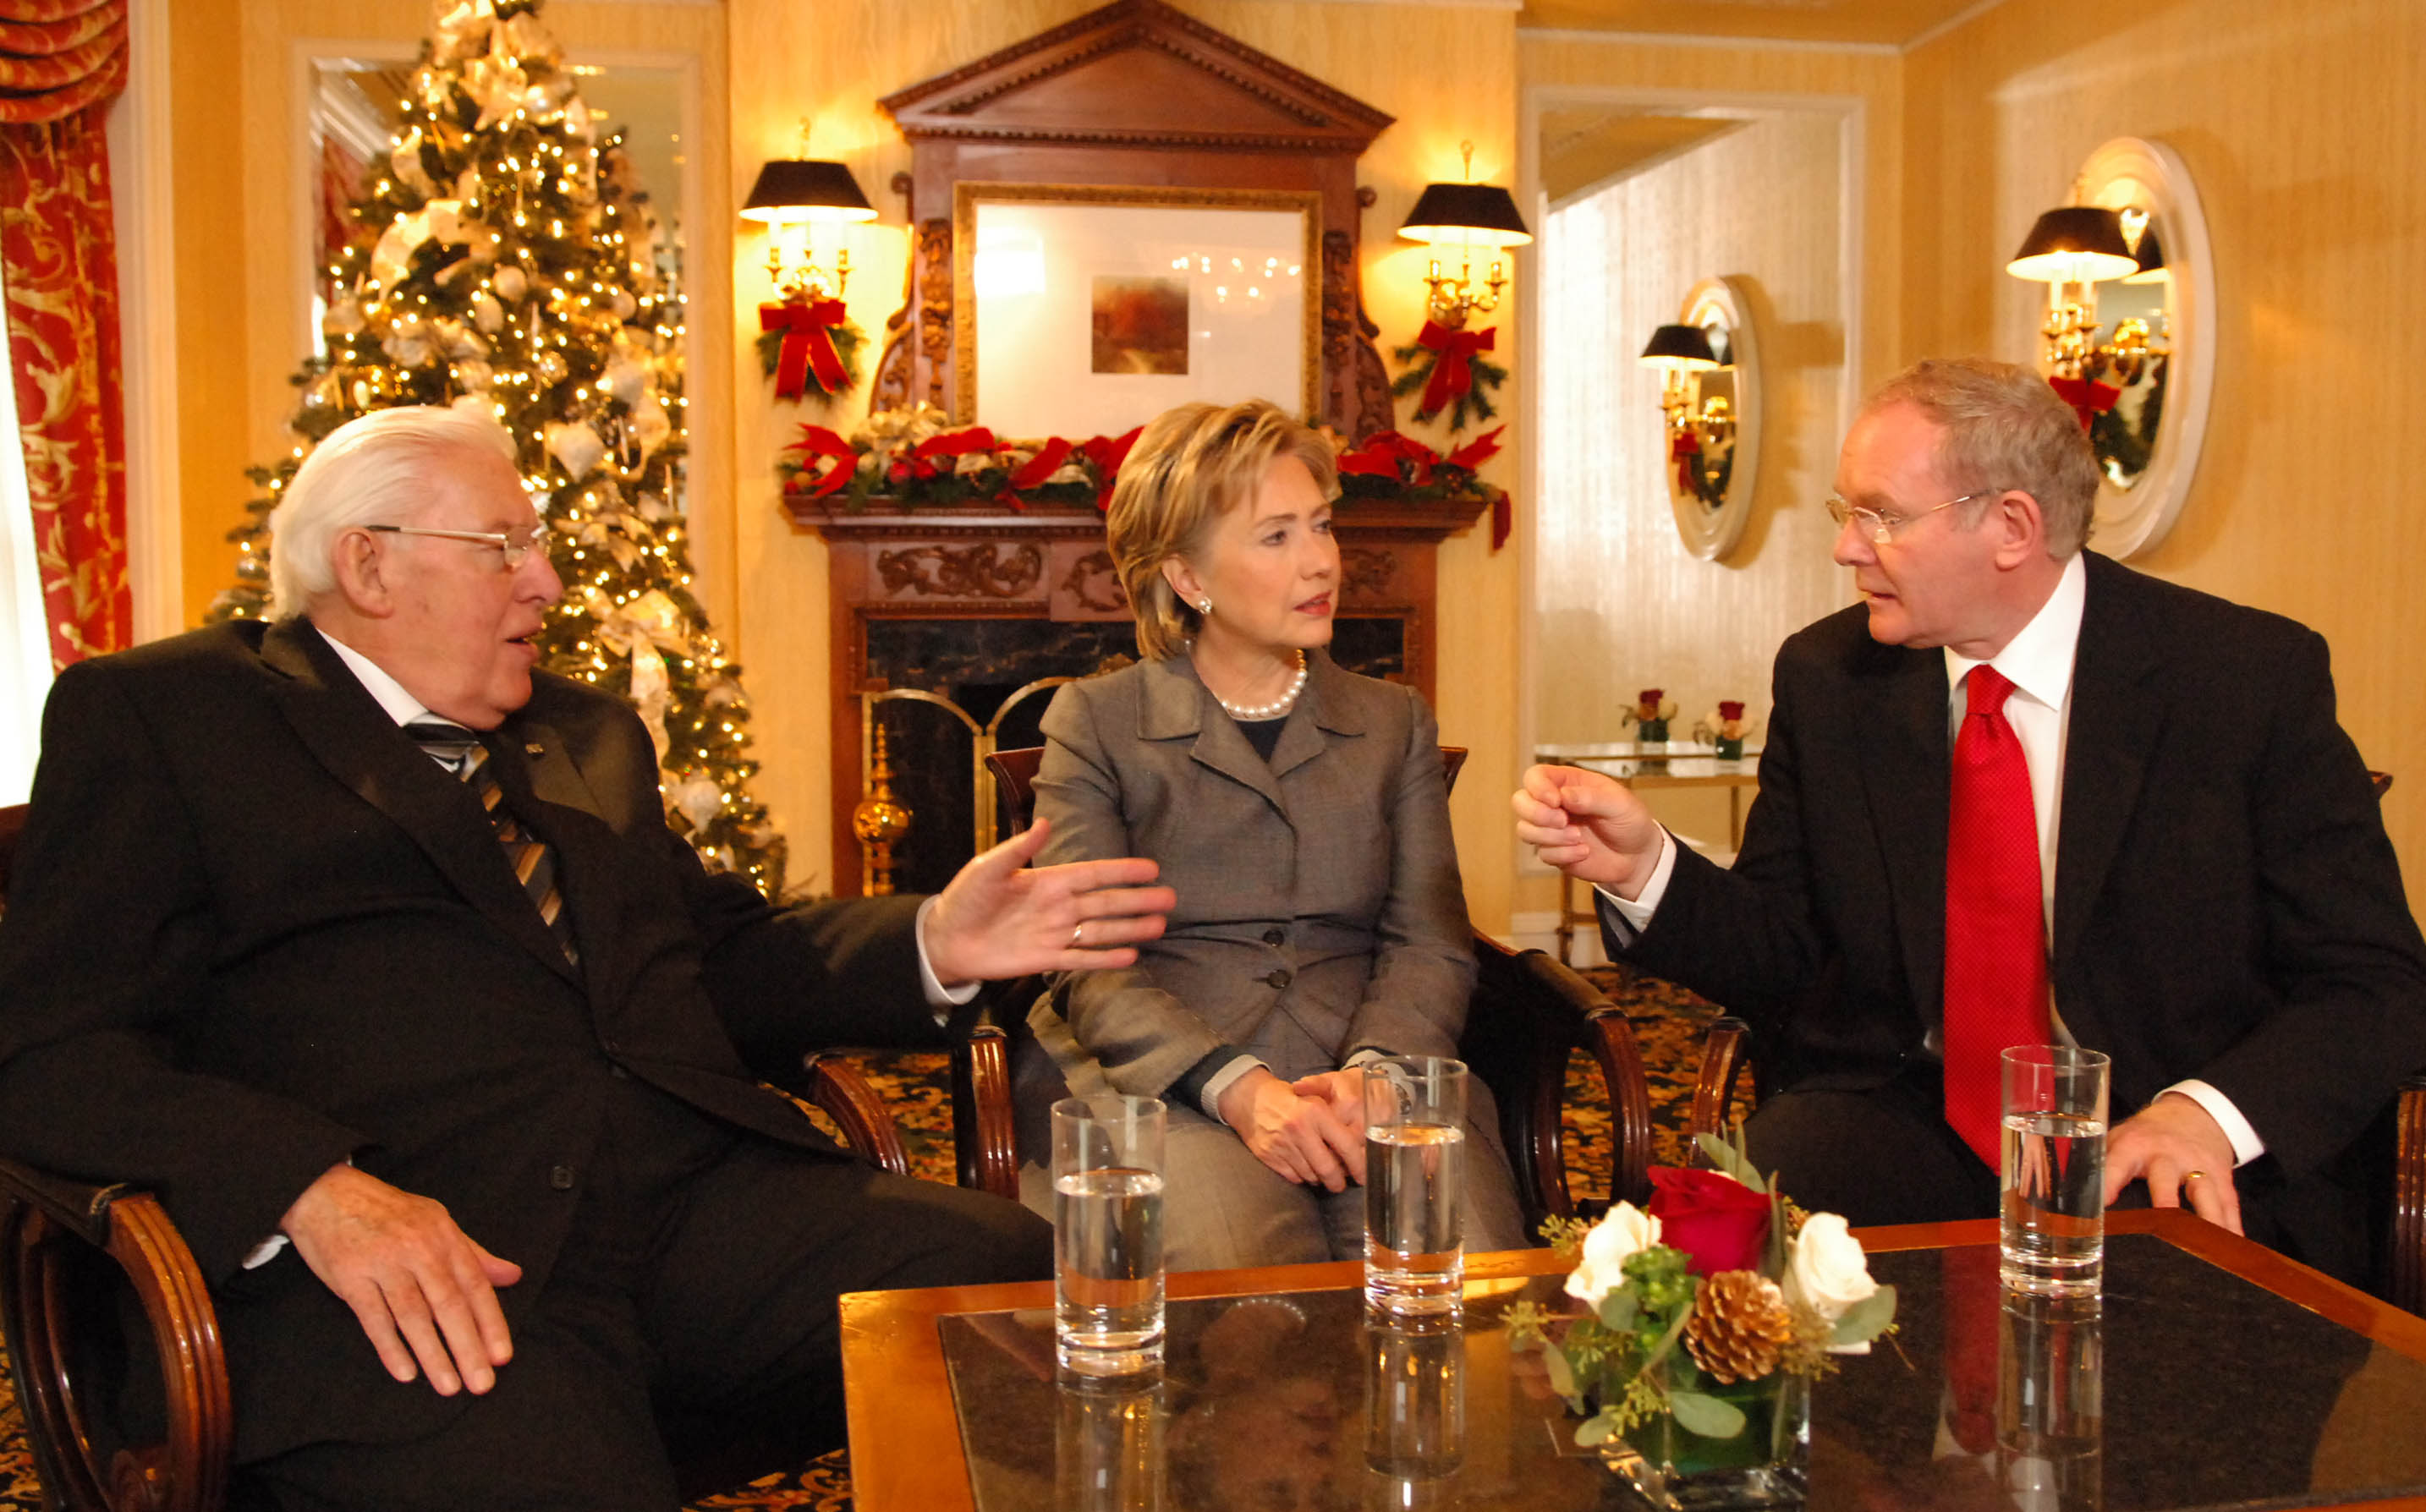 Senator Hilary Clinton with First Minister Northern Ireland Ian Paisley and Deputy First Minister Martin McGuinness at the Willard Hotel ,Washington DC. (Photo: John Harrison)